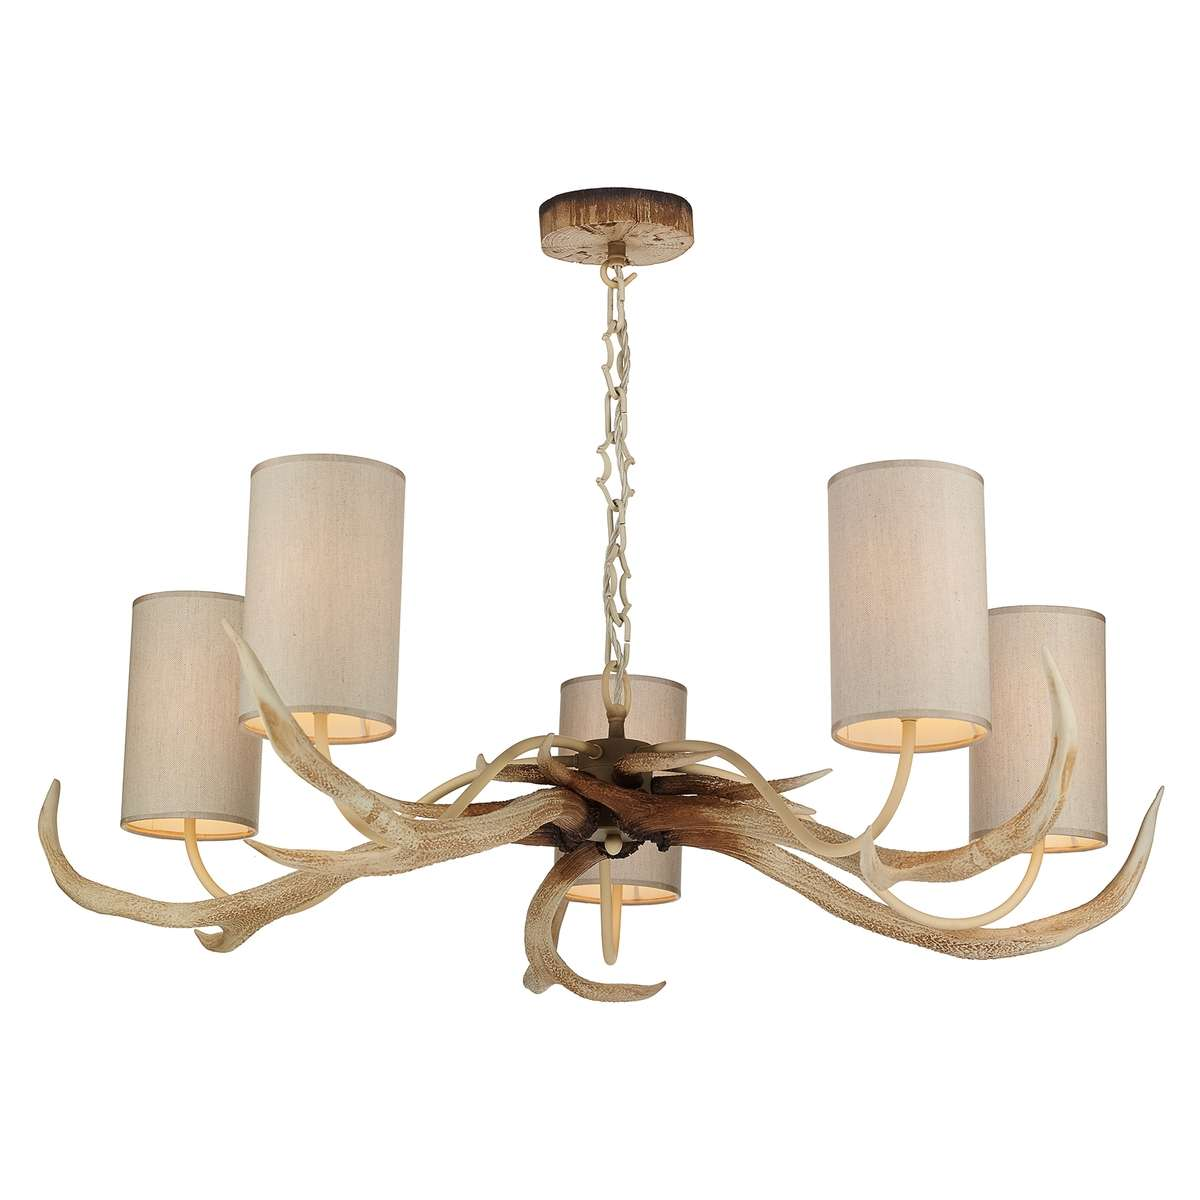 Antler 5 Light Bleached Fitting w/ Cream Fabric Shades